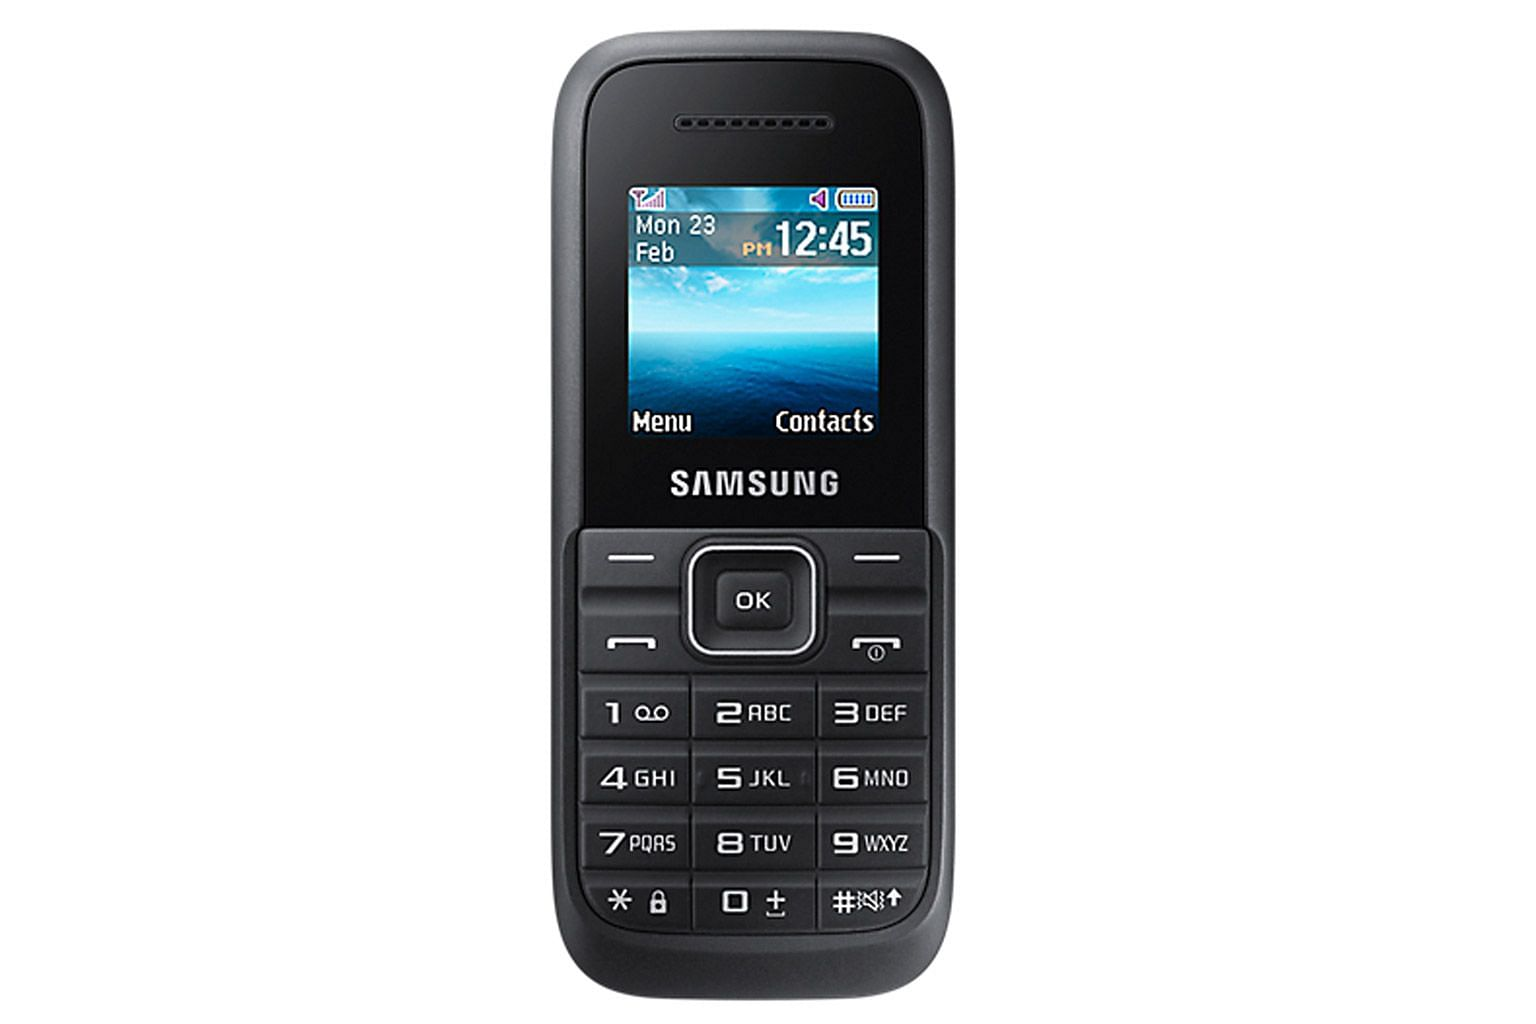 At $68, the Samsung Keystone 3 (B109H) is the cheapest phone in this roundup.